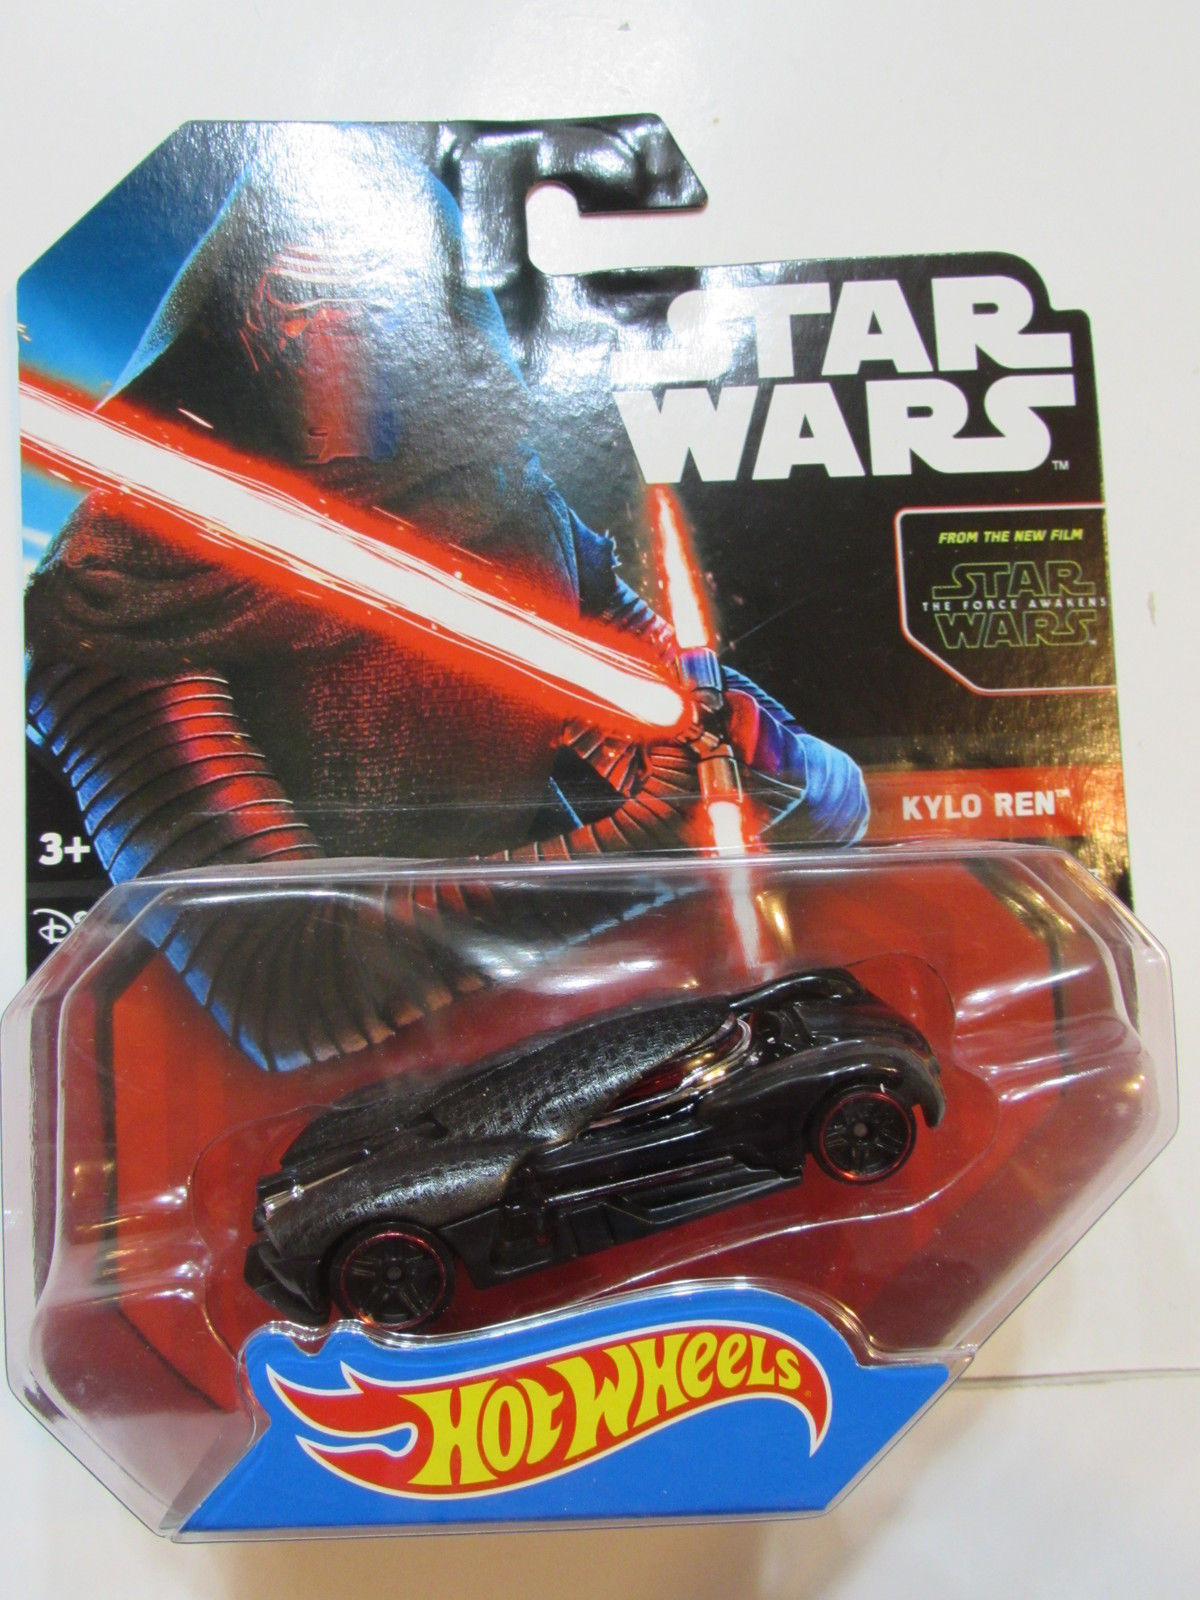 HOT WHEELS STAR WARS 2015 KYLO REN